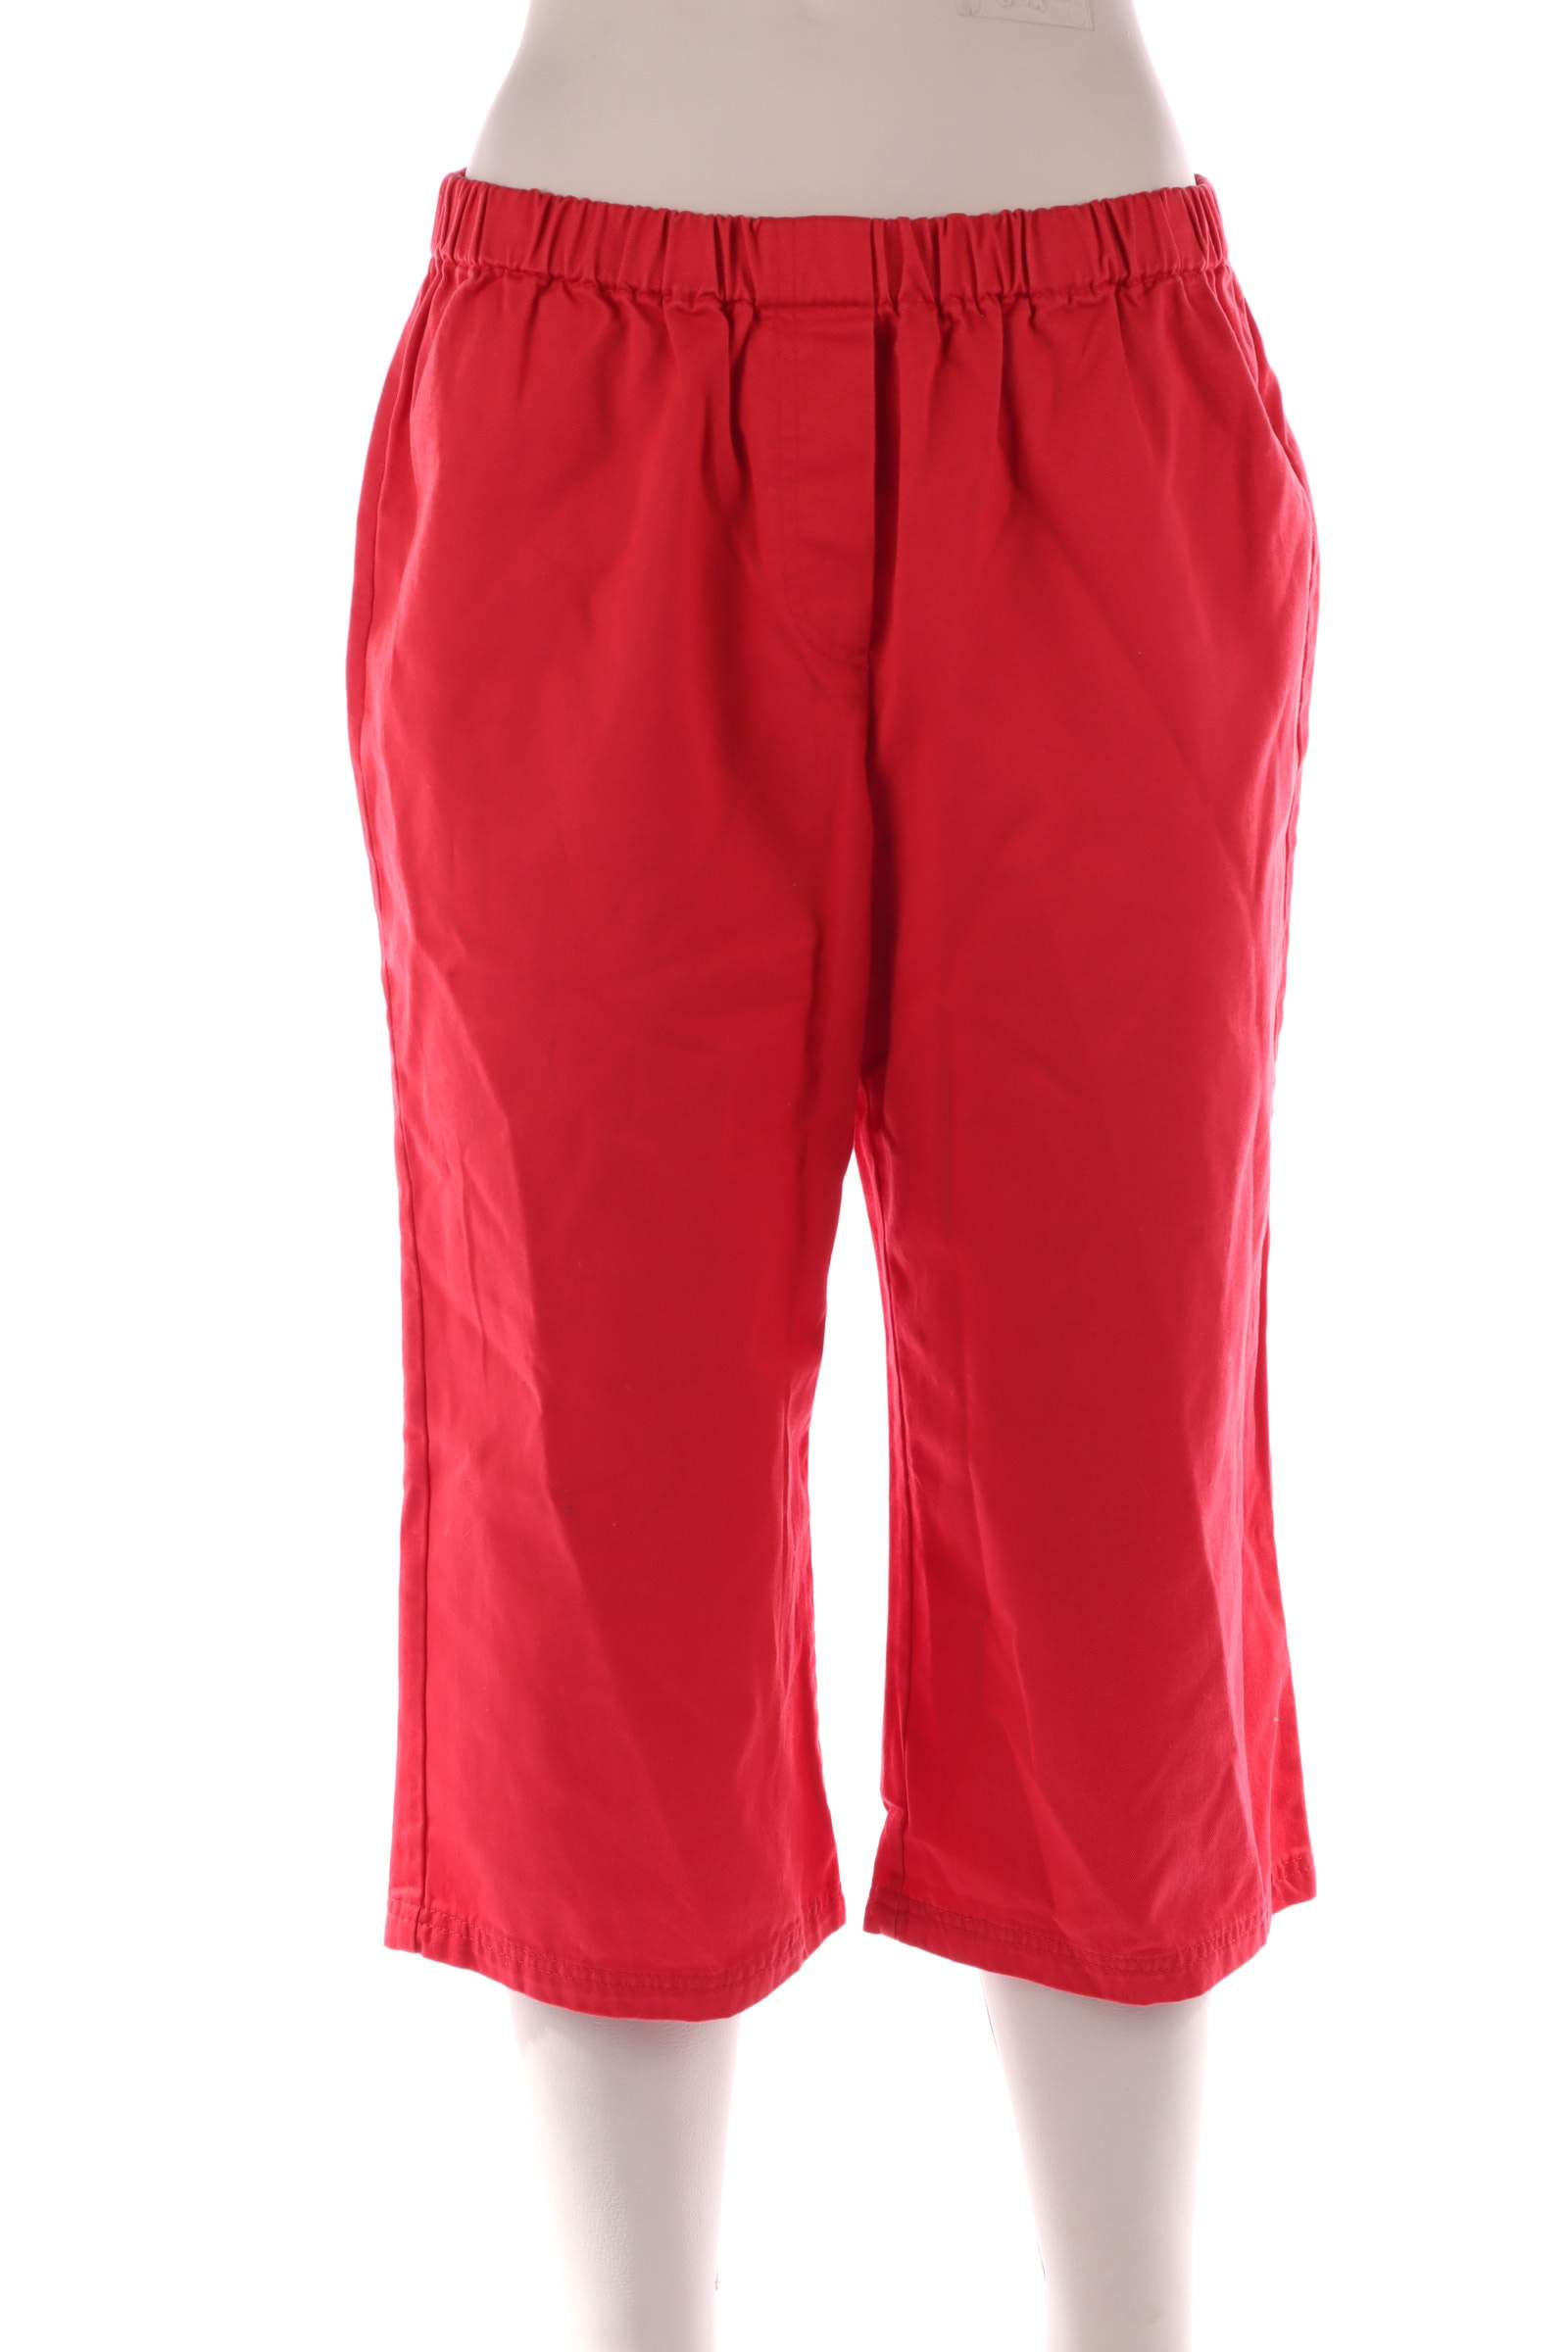 Casual Red Pants - upty.store